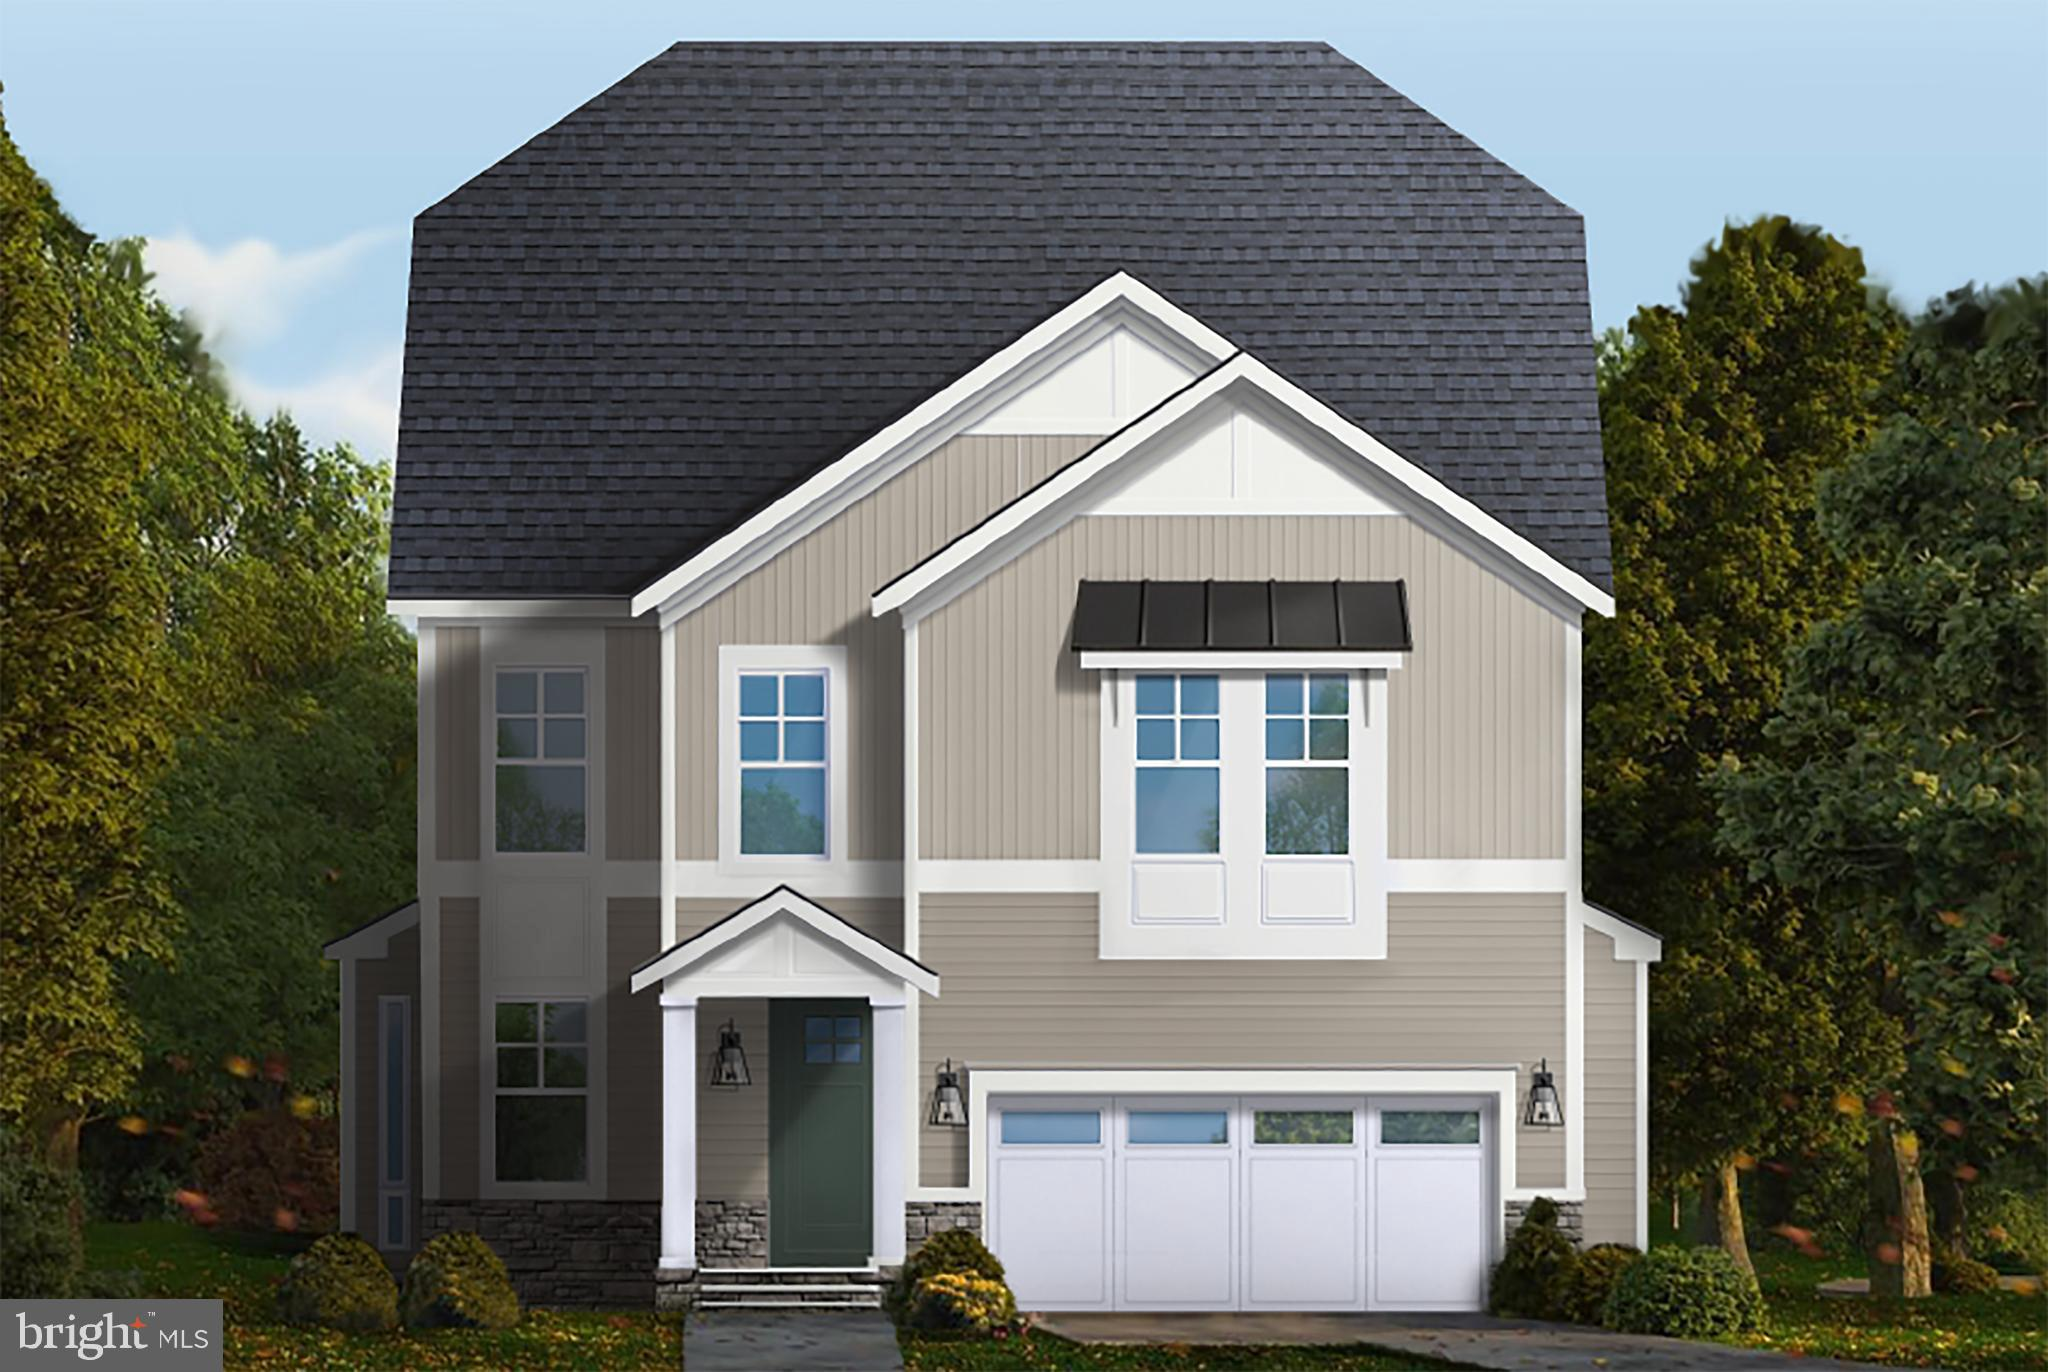 Brand new construction by local builder in sought after Hollin Knoll neighborhood! Expected completion on or before July 30, 2019.  Steps to neighborhood park, pool, Hollin Hall Shopping Center, and GW Parkway! List of included finishes and features available upon request or in the documents section. This one of a kind modern farmhouse offers 4,104 finished square feet on three fully finished levels, 5 bedrooms and 4.5 bathrooms.  The open concept main level features hardwood floors, 9-foot ceilings and a gas fireplace. Stunning kitchen with center island, stainless steel appliances, painted maple cabinetry, quartz countertops, designer lighting and subway tile backsplash.  Mudroom and Pantry just off the kitchen. Kitchen opens to family room and screen porch. 4 spacious bedrooms, 3 full baths and separate laundry room on the upper level. The master suite is complete with large dressing room/walk-in closet and beautiful master bath complete with a freestanding Kohler soaking tub, vanities with quartz countertops and glass shower door. Finished walk out basement includes rec room, 5th bedroom and 4th full bathroom. Attached 2-car front loading garage. UPGRADE OPTION - finish 4th level loft for 6th bedroom and 5th full bath, adding an additional 898 sq ft.  The home offers many unique freatures including a covered patio, screened in porch, walk up attic, mud room and large pantry!  You have never seen Hollin Hall done so well!!!